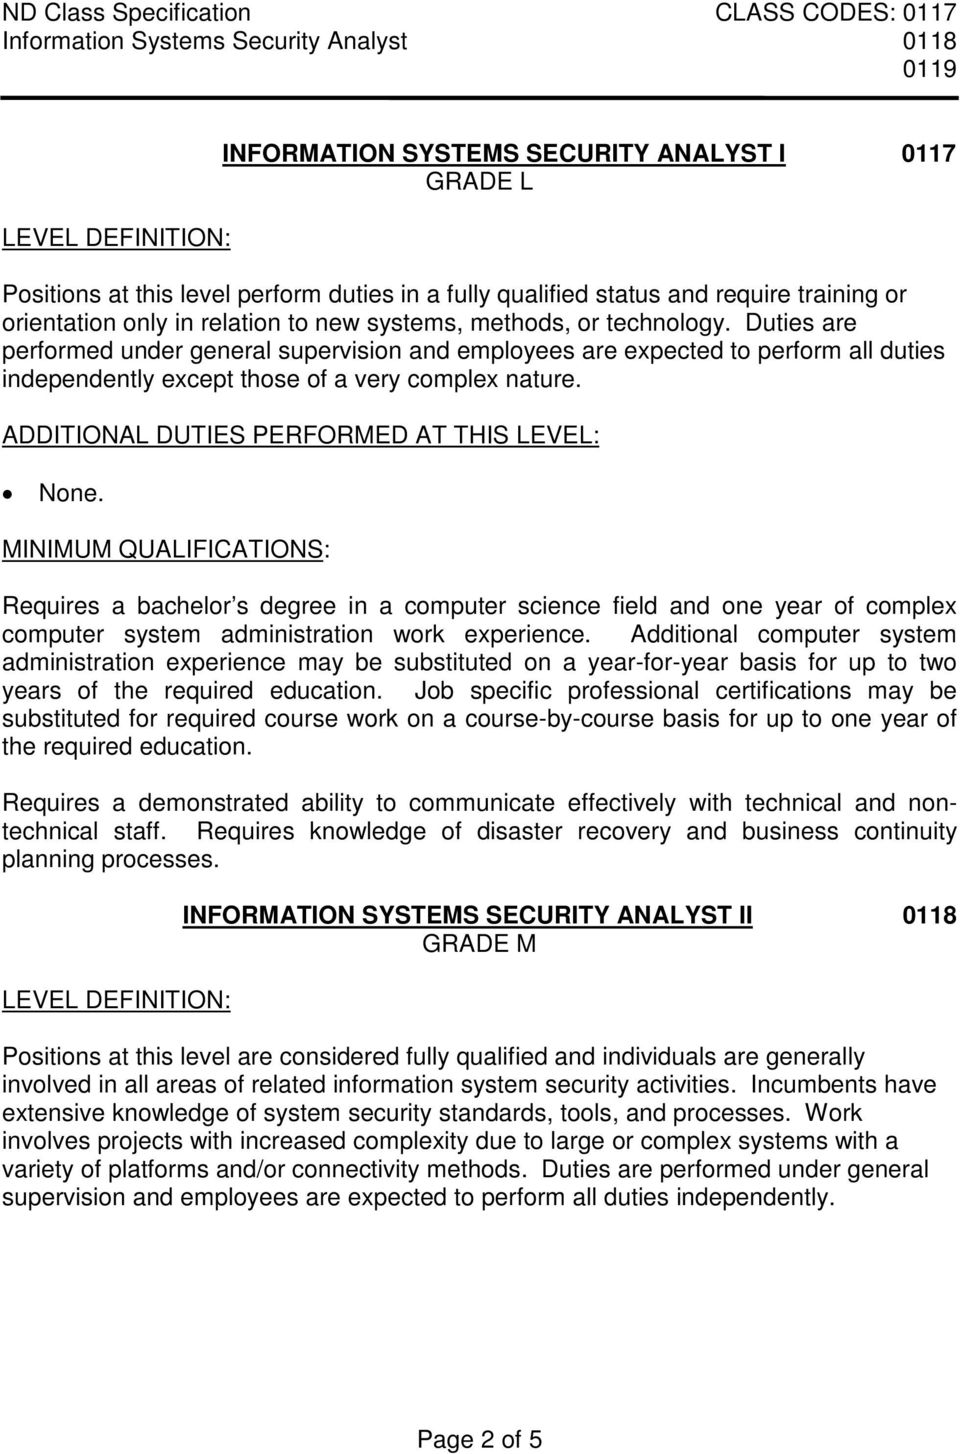 Requires a bachelor s degree in a computer science field and one year of complex computer system administration work experience.